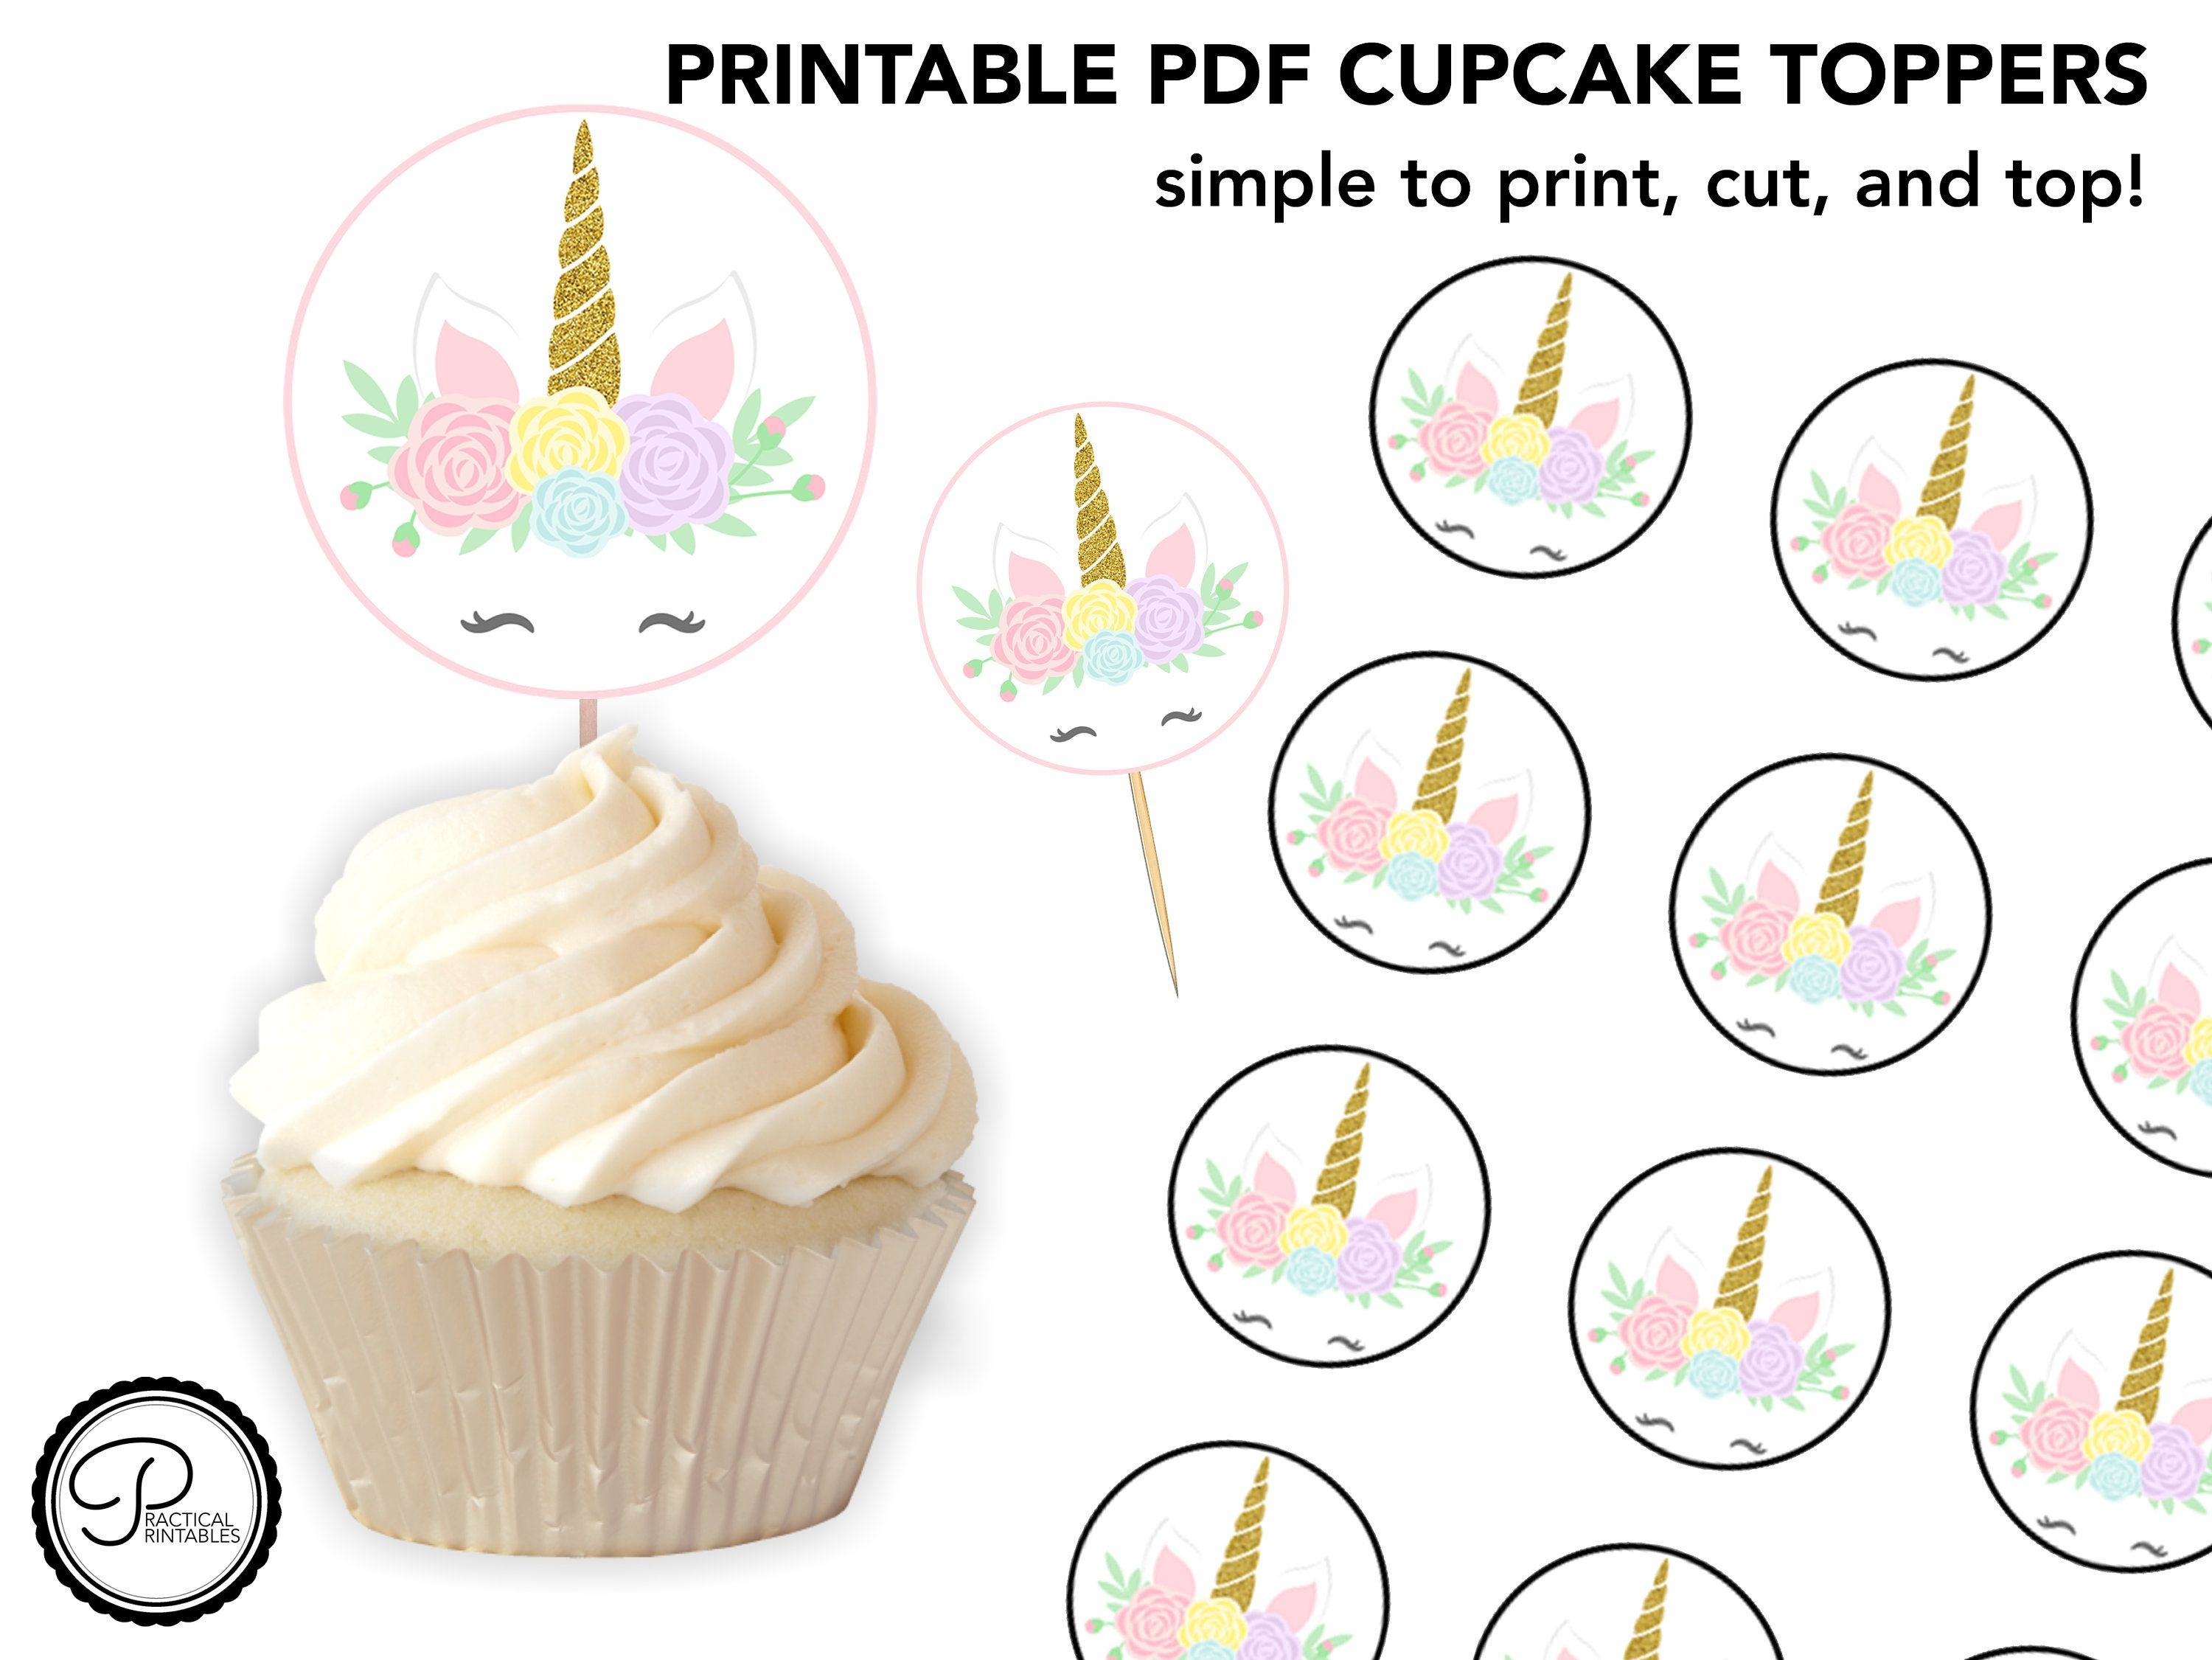 Printable Unicorn Cupcake Toppers - Perfect For A Simple Party - Free Printable Unicorn Cupcake Toppers